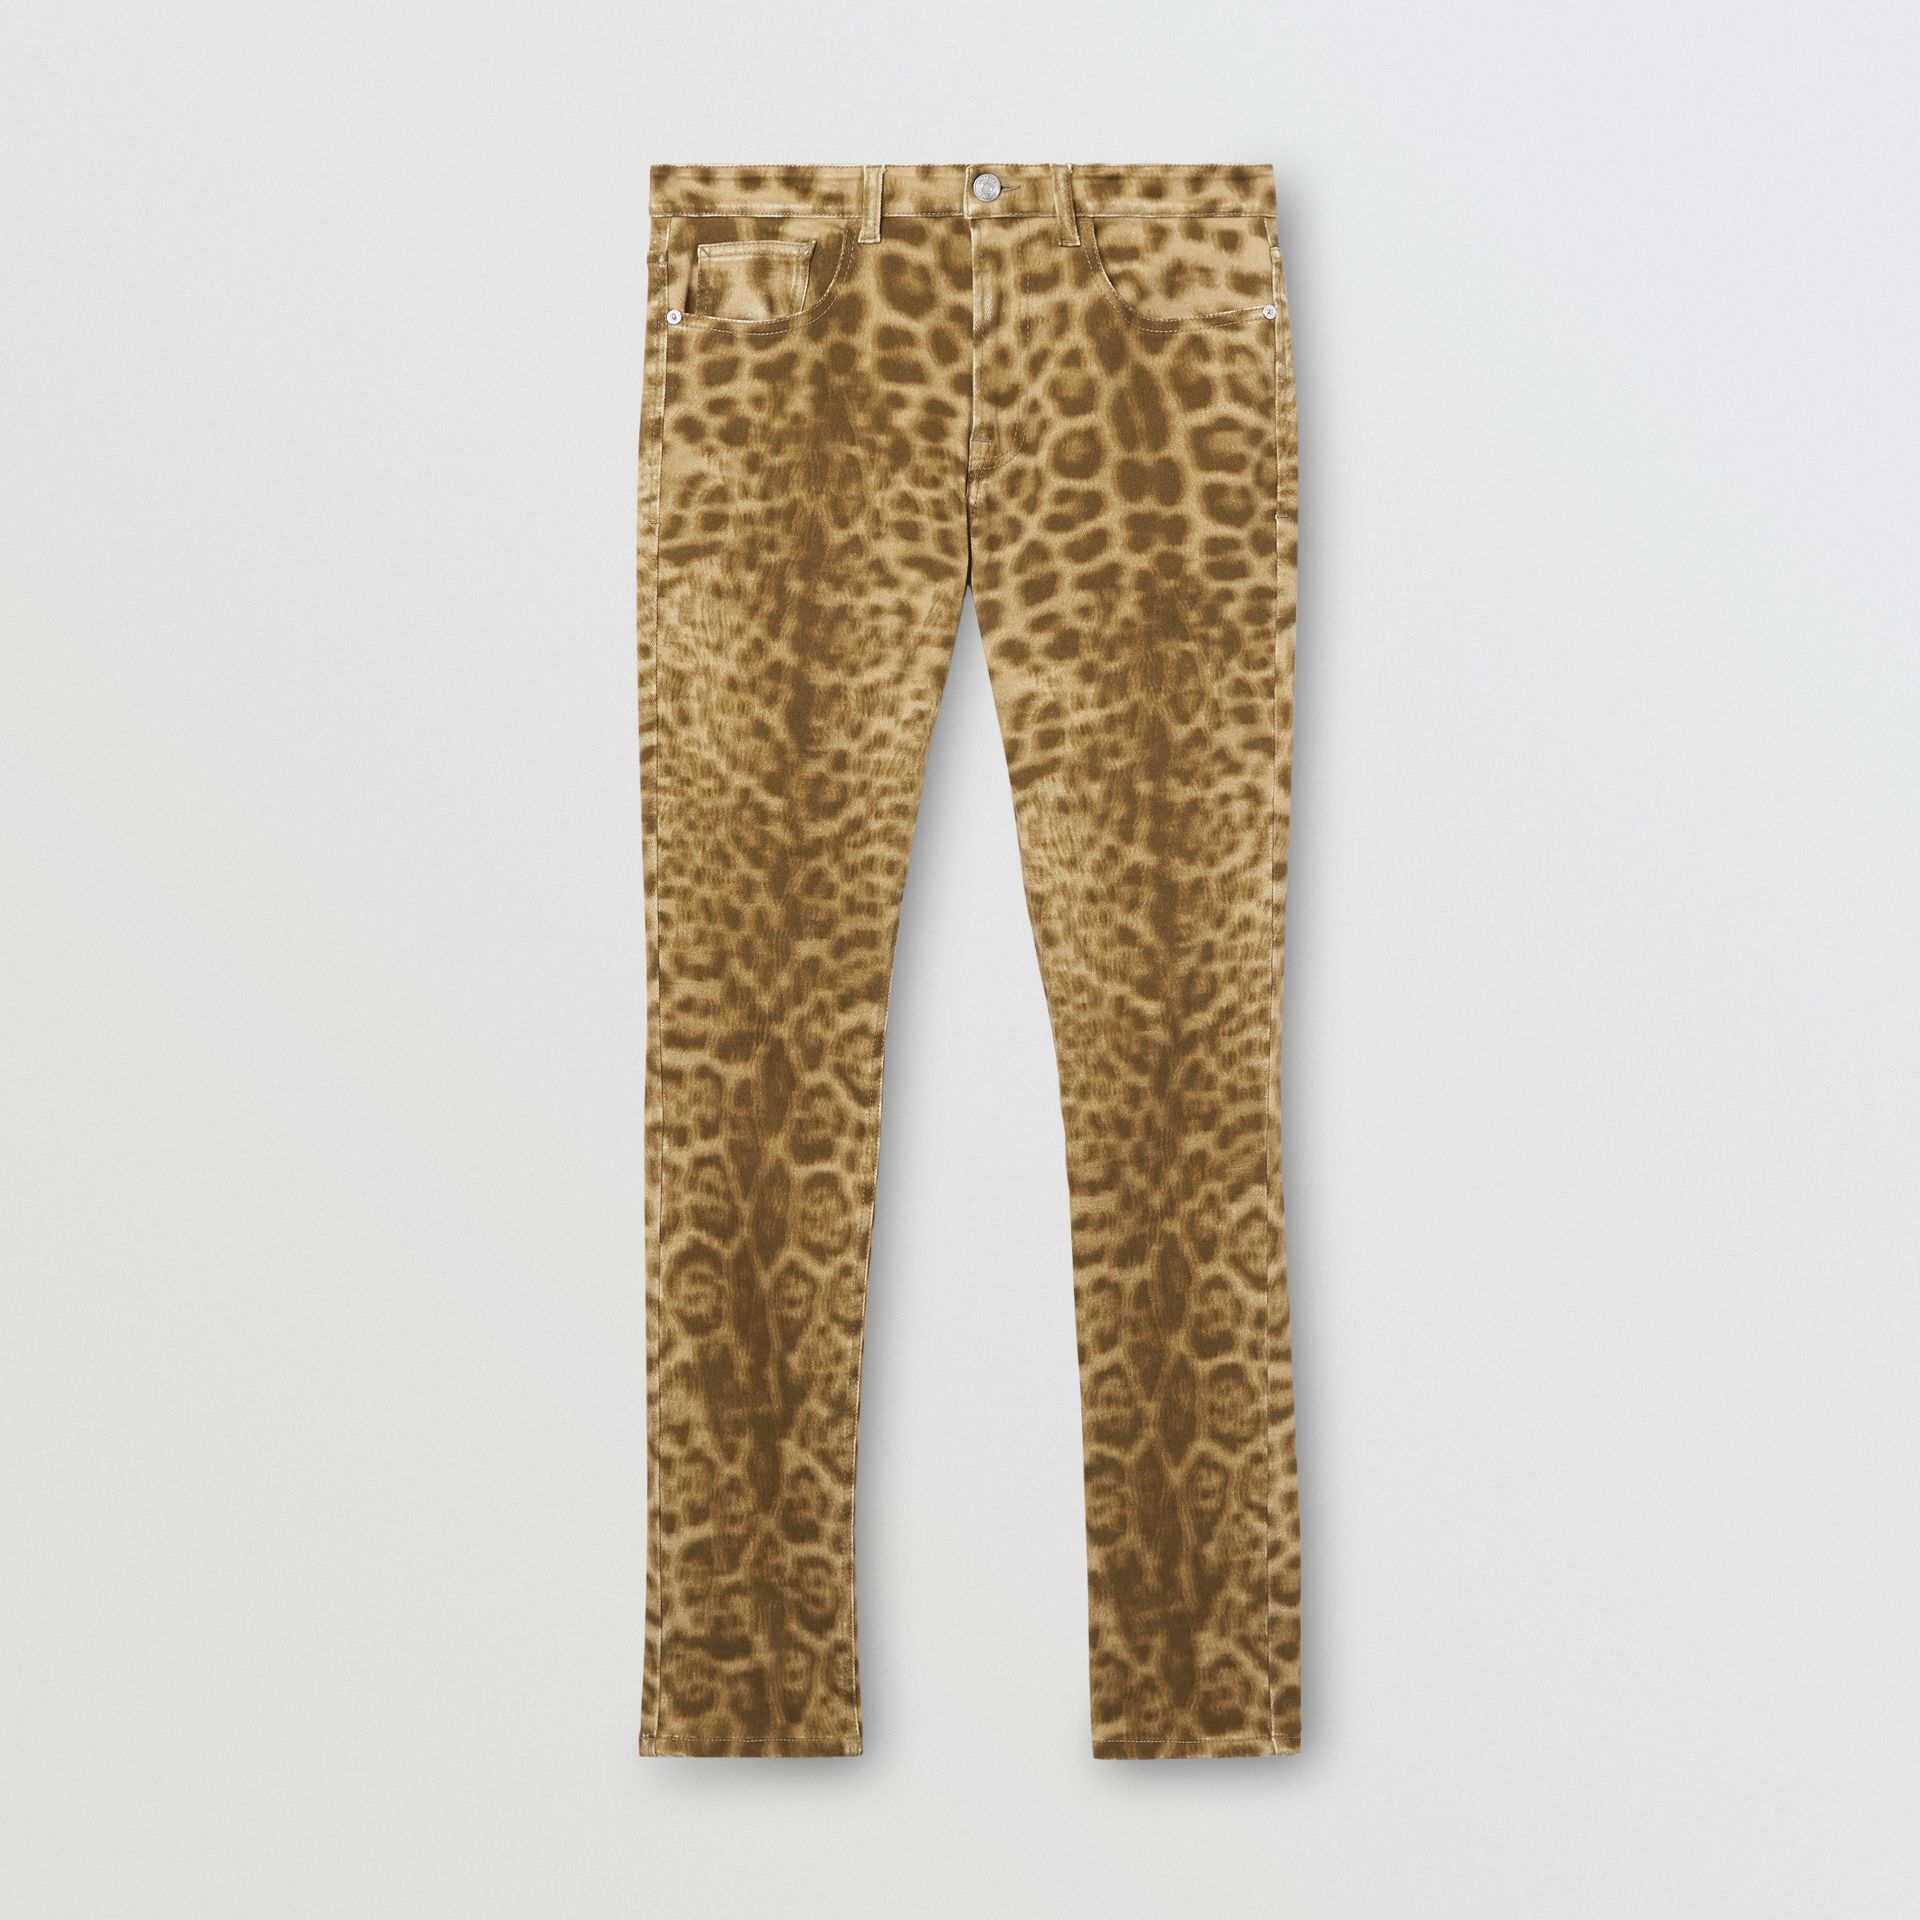 Straight Fit Leopard Print Japanese Denim Jeans in Beige - Women | Burberry - gallery image 2